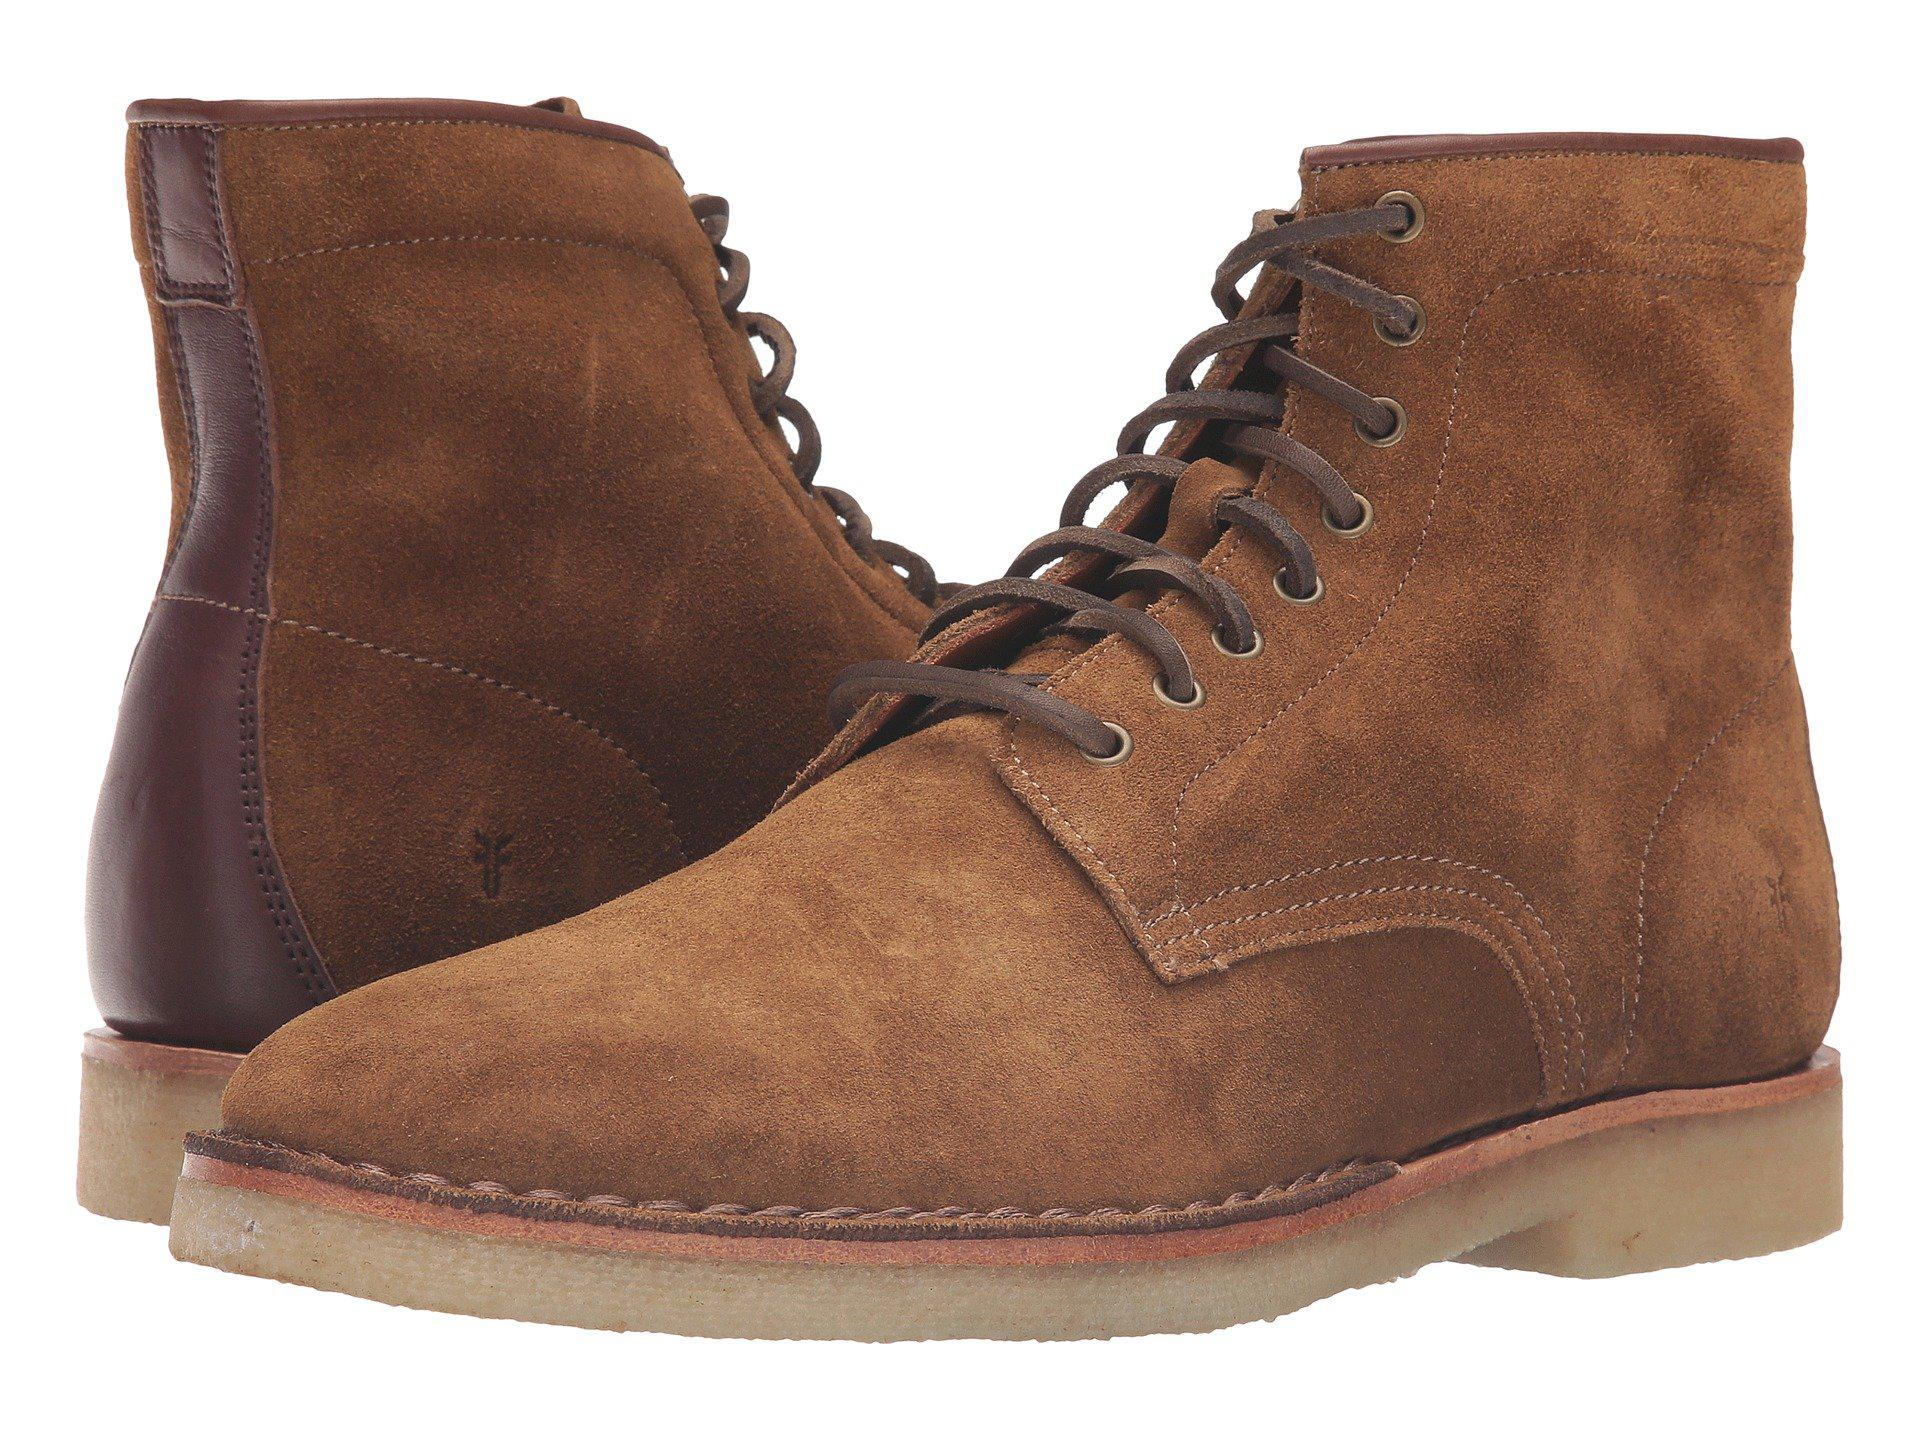 Frye. Men's Brown Arden Lace-up